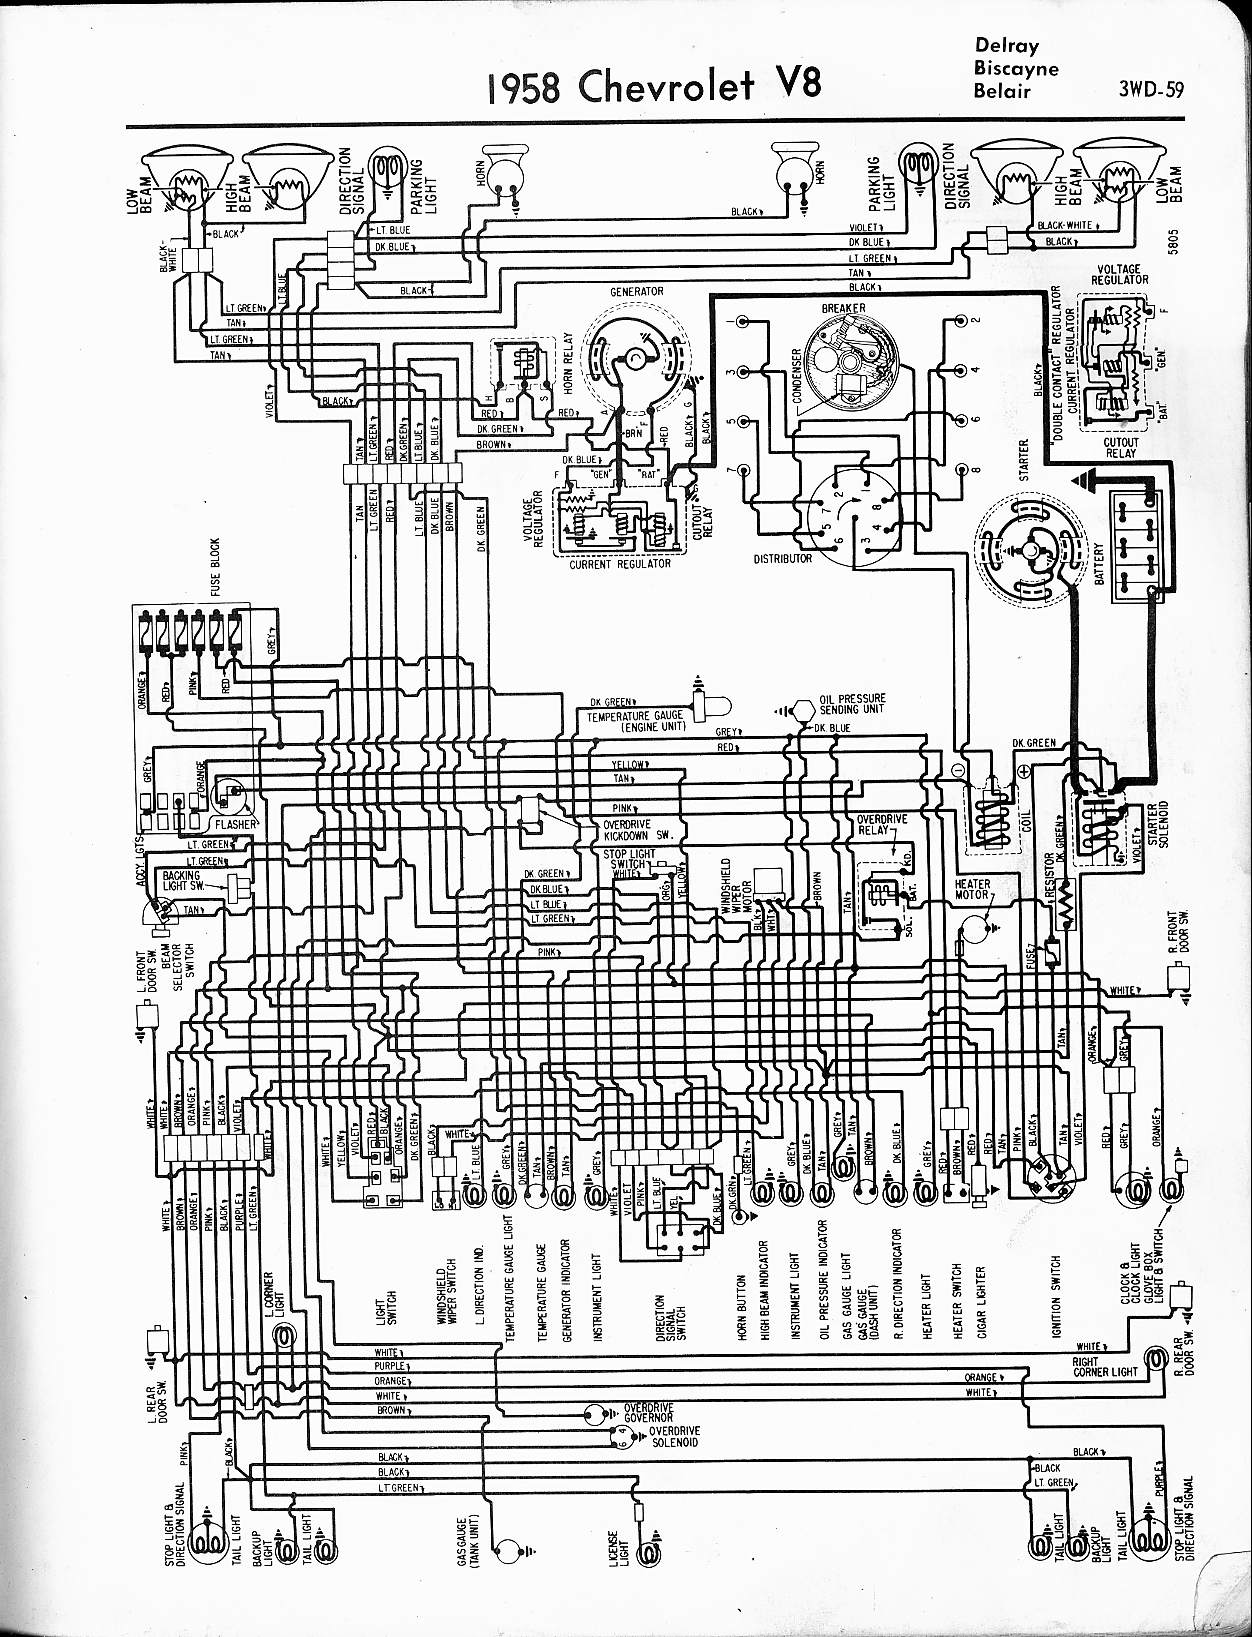 MWireChev58_3WD 059 57 65 chevy wiring diagrams chevy wiring schematics at honlapkeszites.co